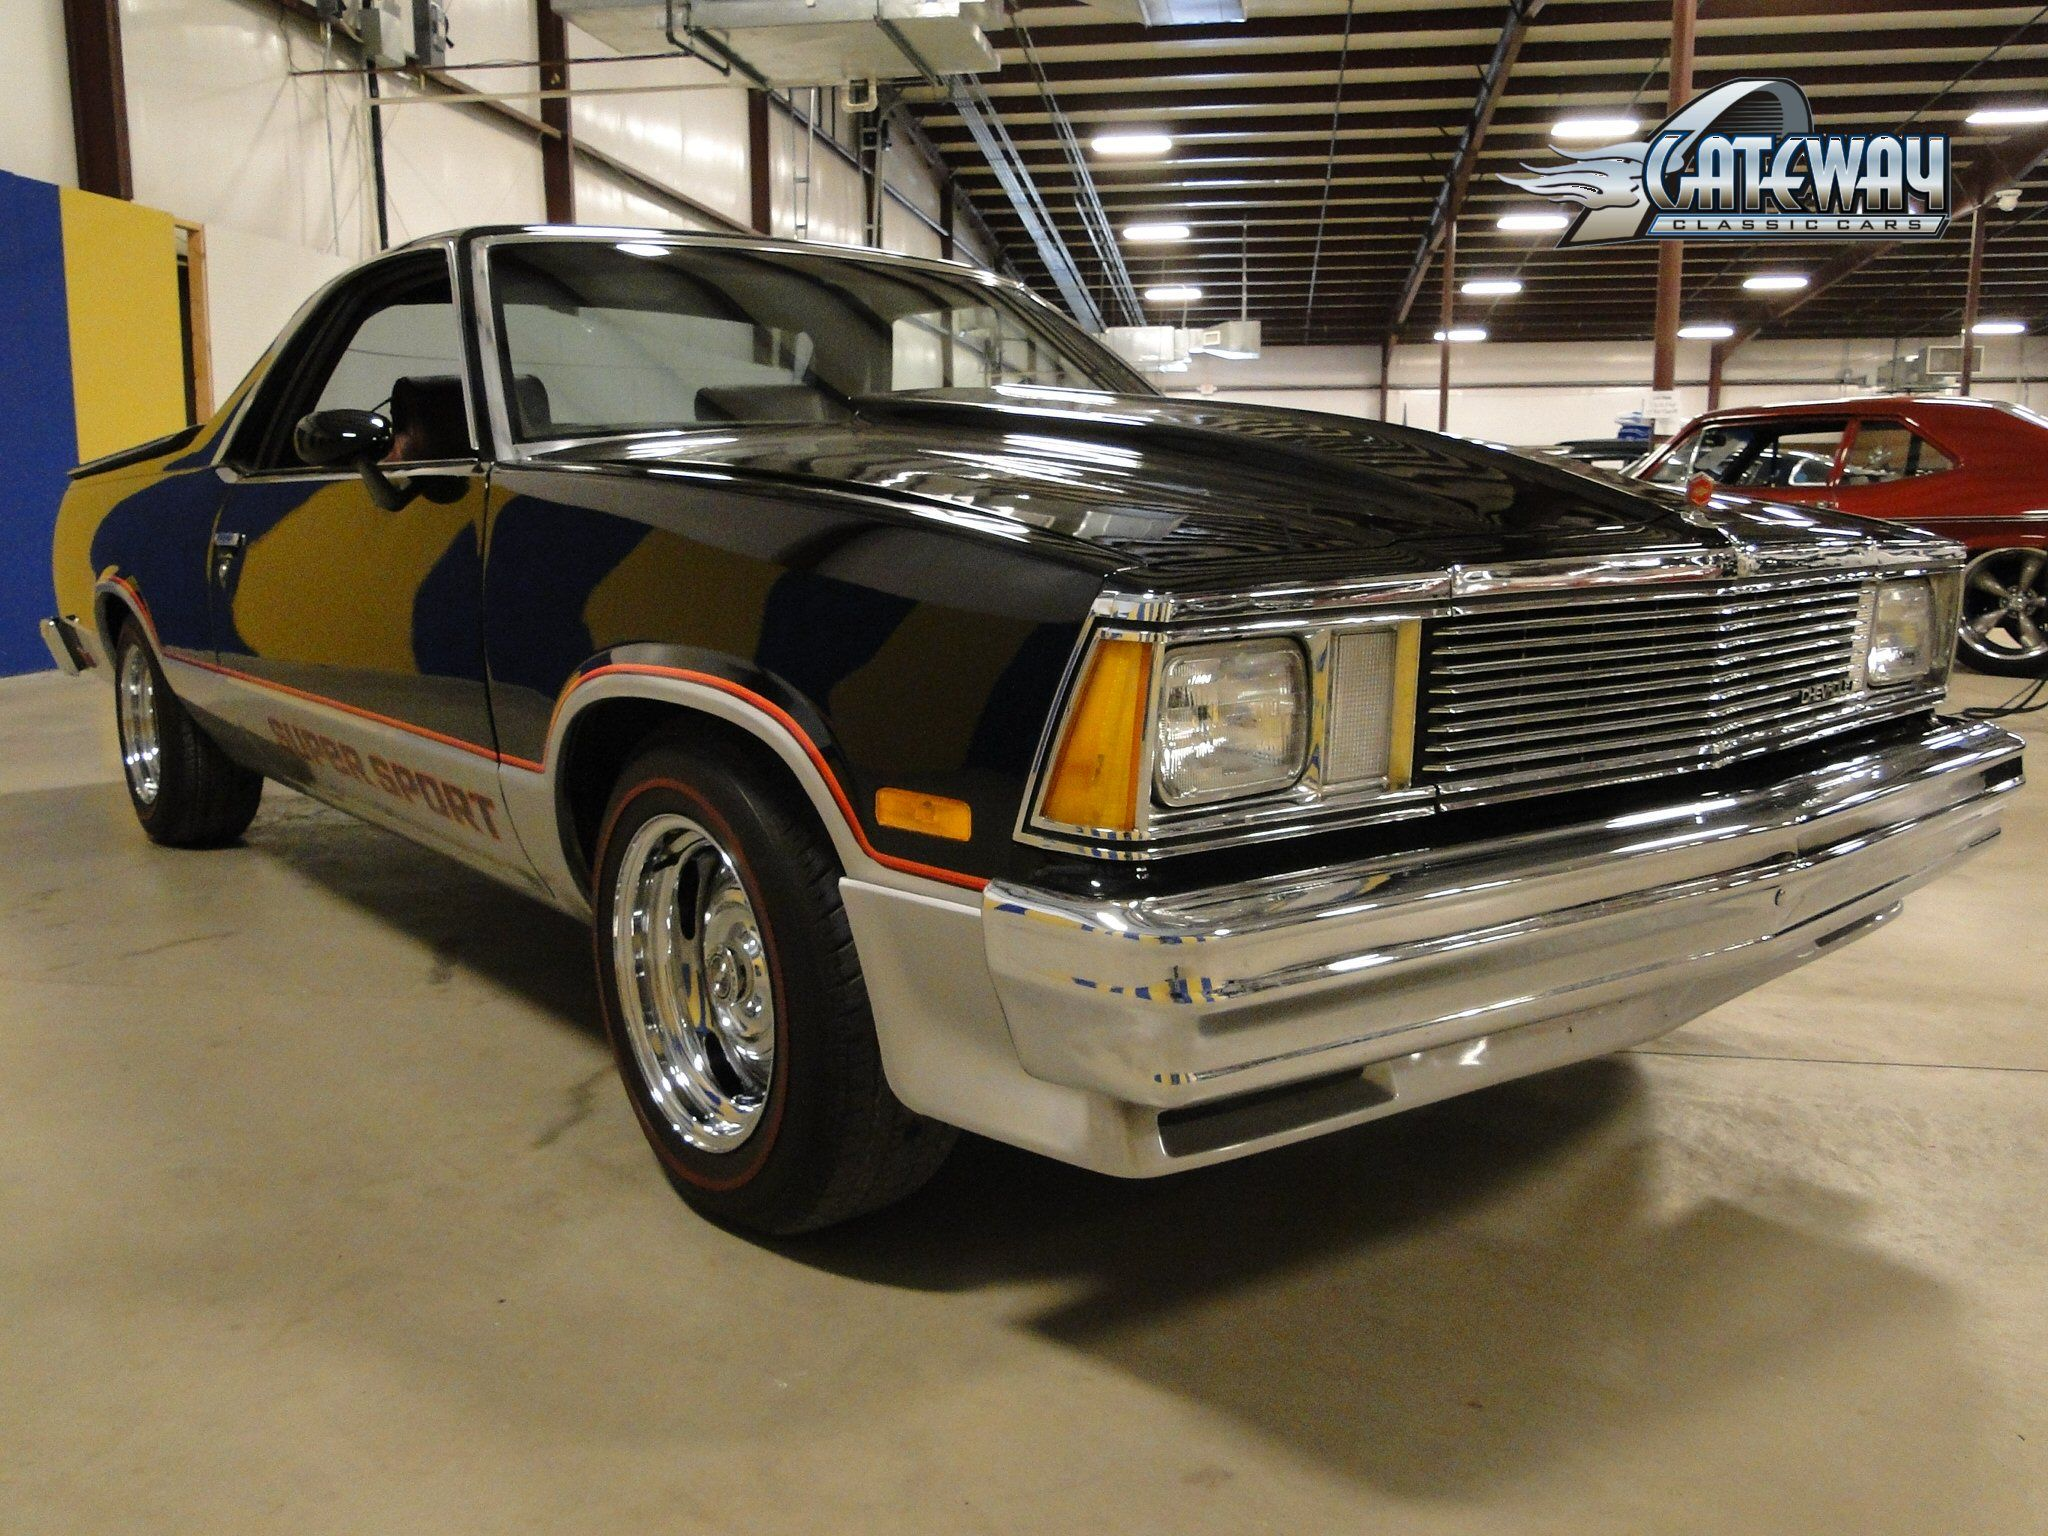 For sale in our louisville kentucky showroom is a black 1981 chevrolet el camino ss 305 cid 350 turbo automatic